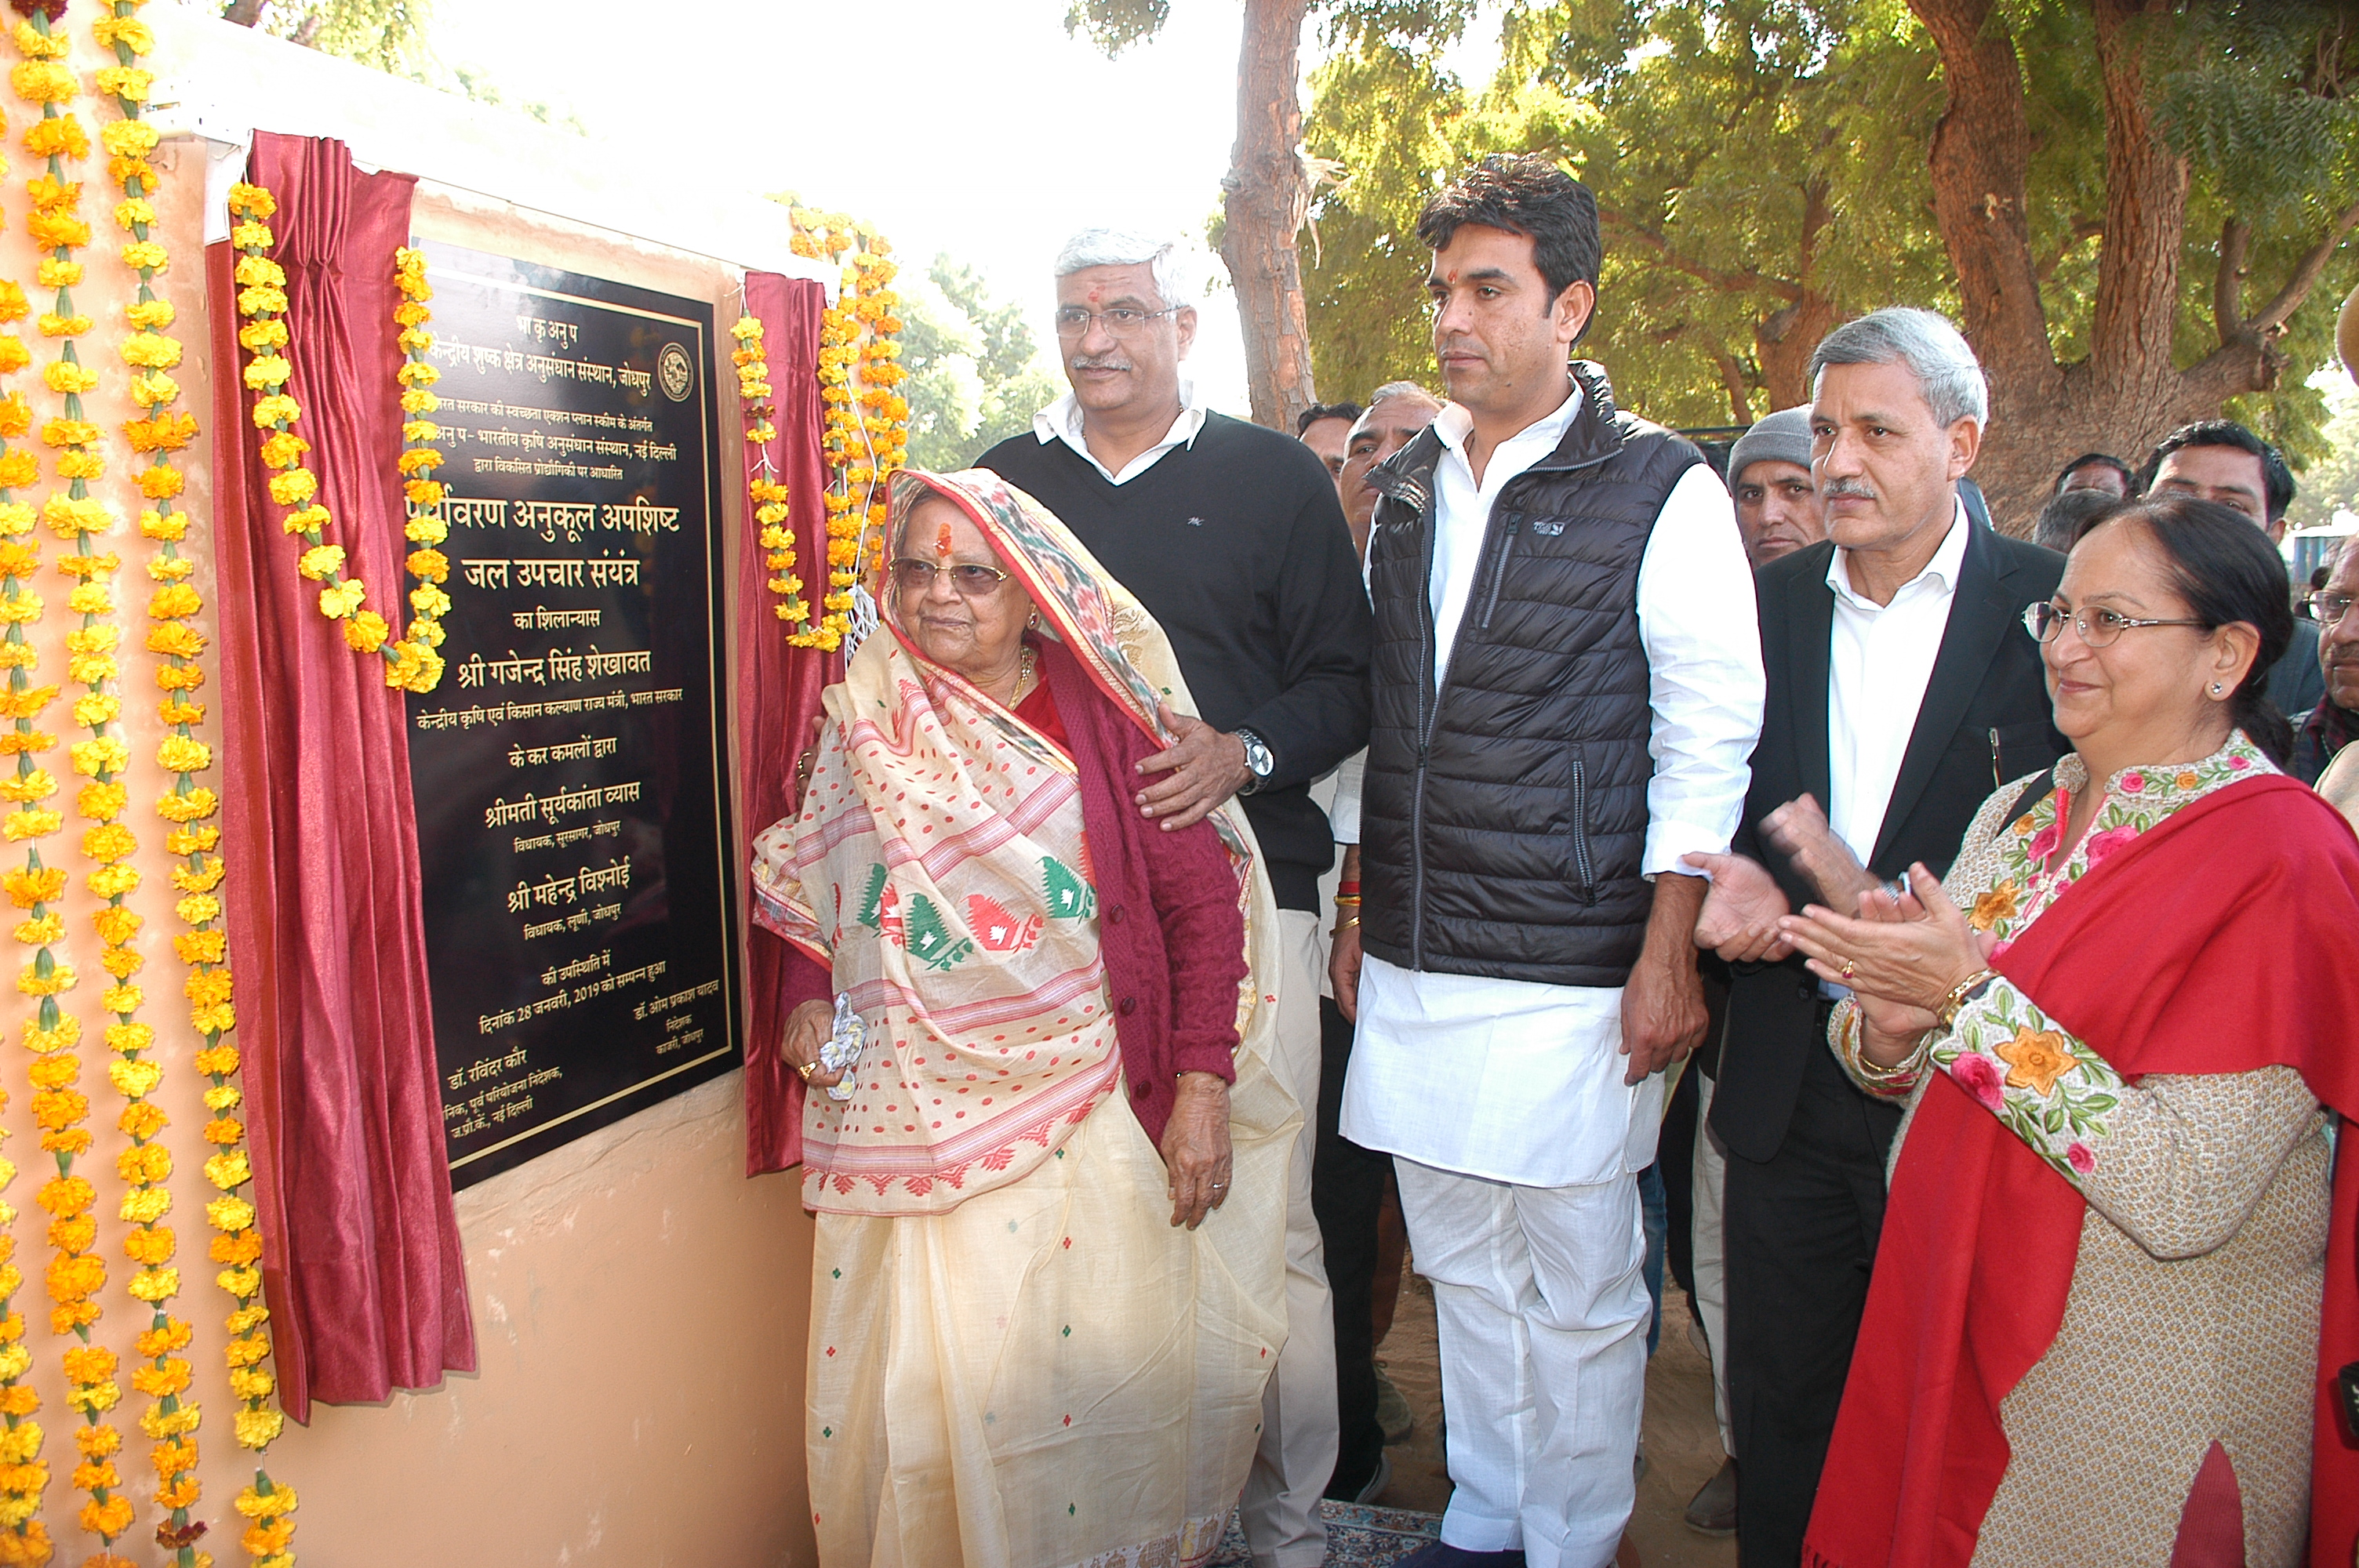 Foundation stone laying Ceremony of IARI technology based Wastewater Treatment Plant by Honourable Gajendra Singh Shekhawat,  Minister of State for Agriculture & Farmers Welfare, Smt. Suryakanta Vyas, MLA (Sursagar) and Sh. Mahendra Vishnoi, MLA (Luni) at